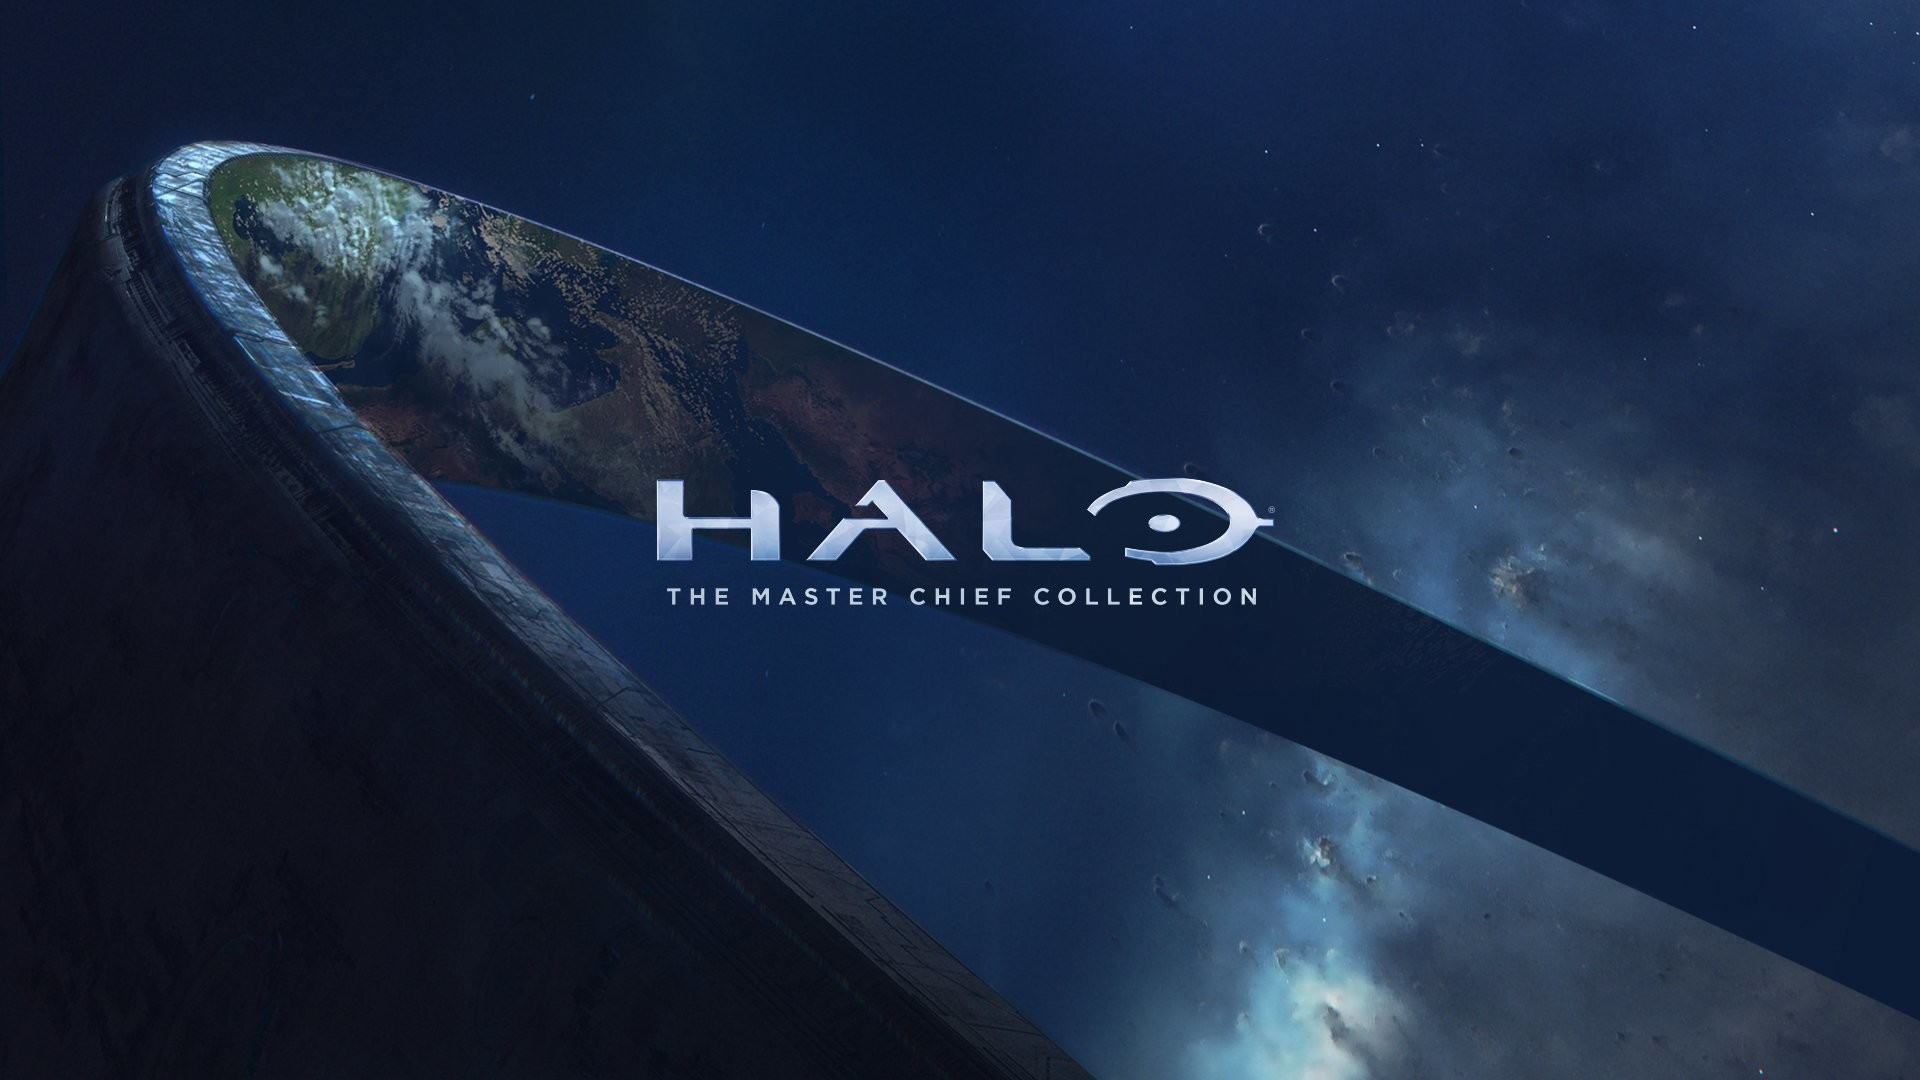 Afbeeldingsresultaten voor halo master chief collection